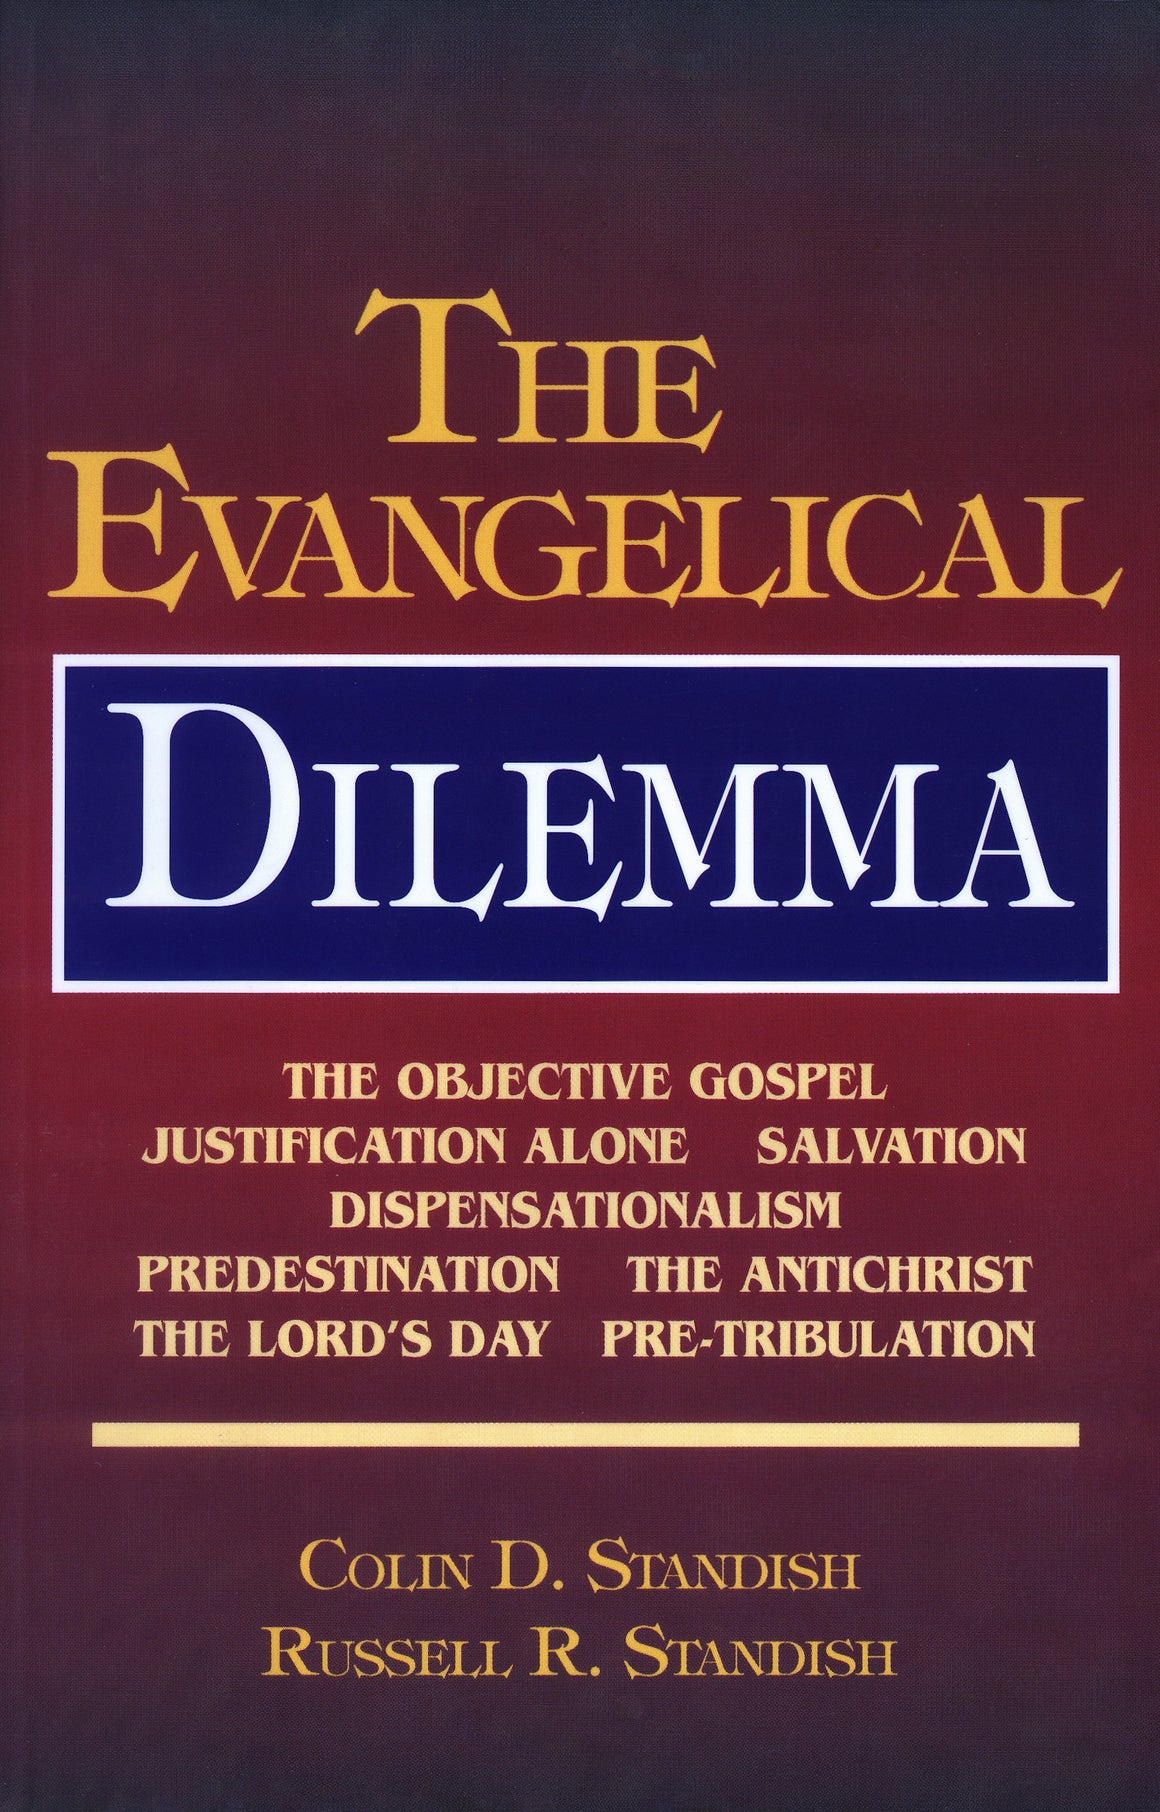 The Evangelical Dilemma